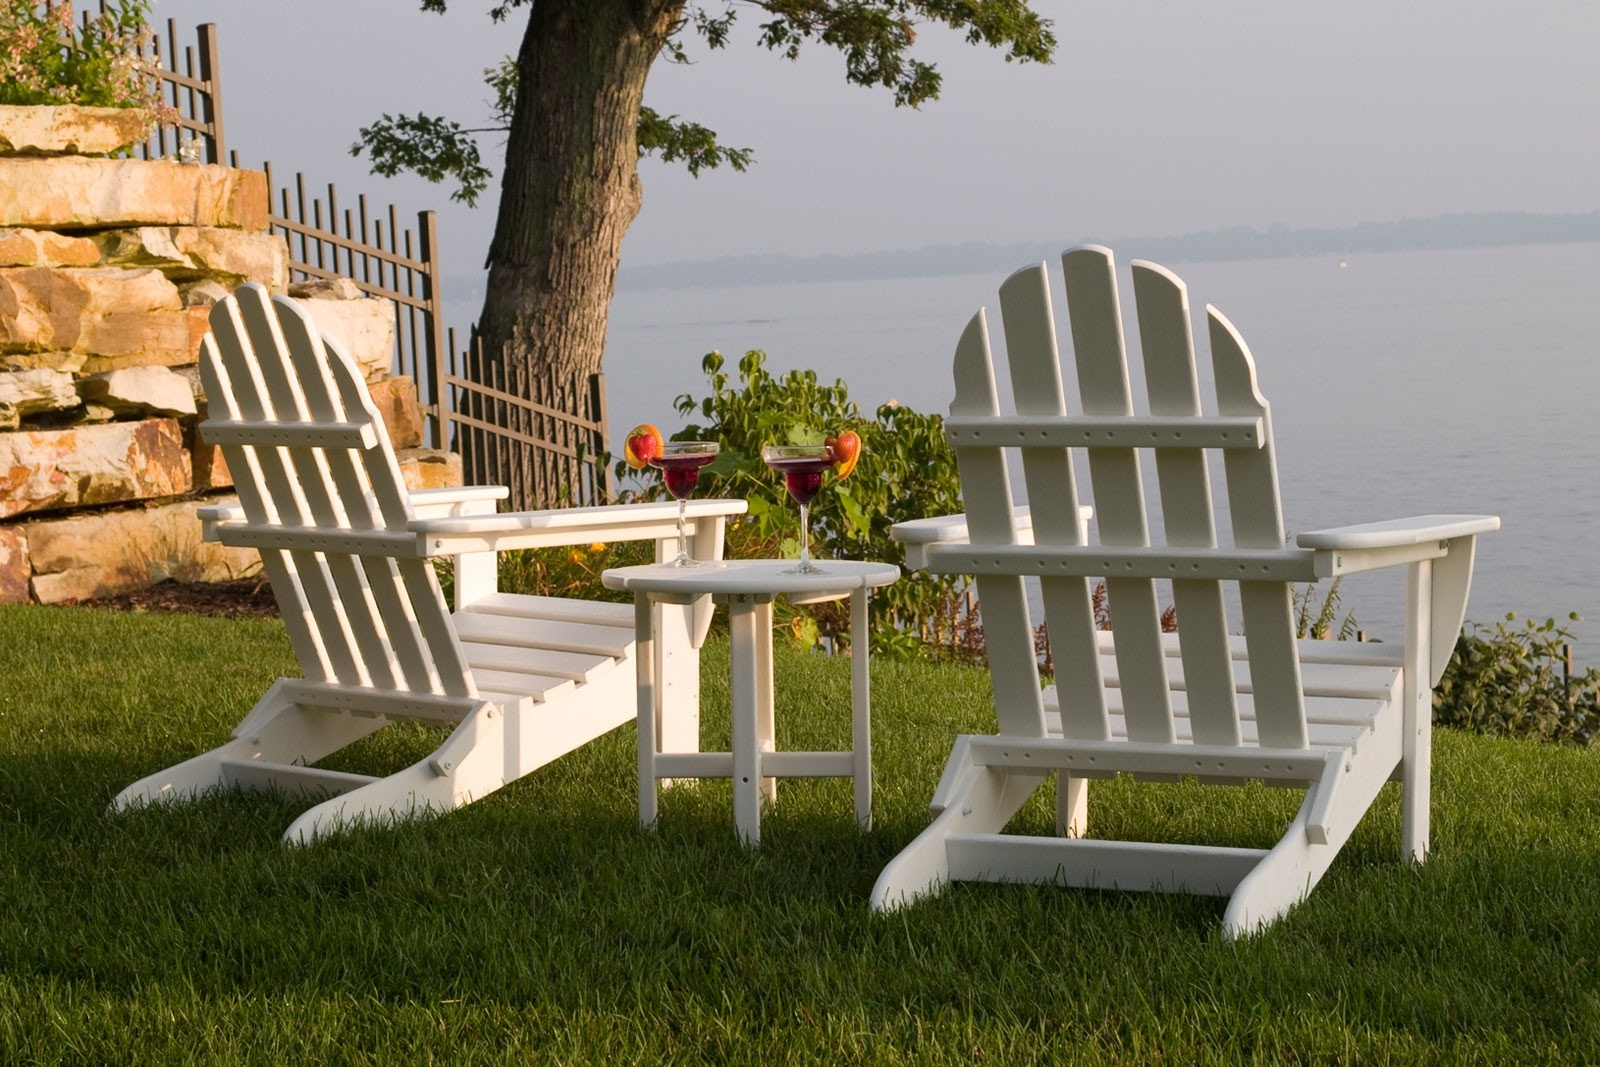 westport chair co white adirondack chair wcc5030wht from walter e smithe furniture design